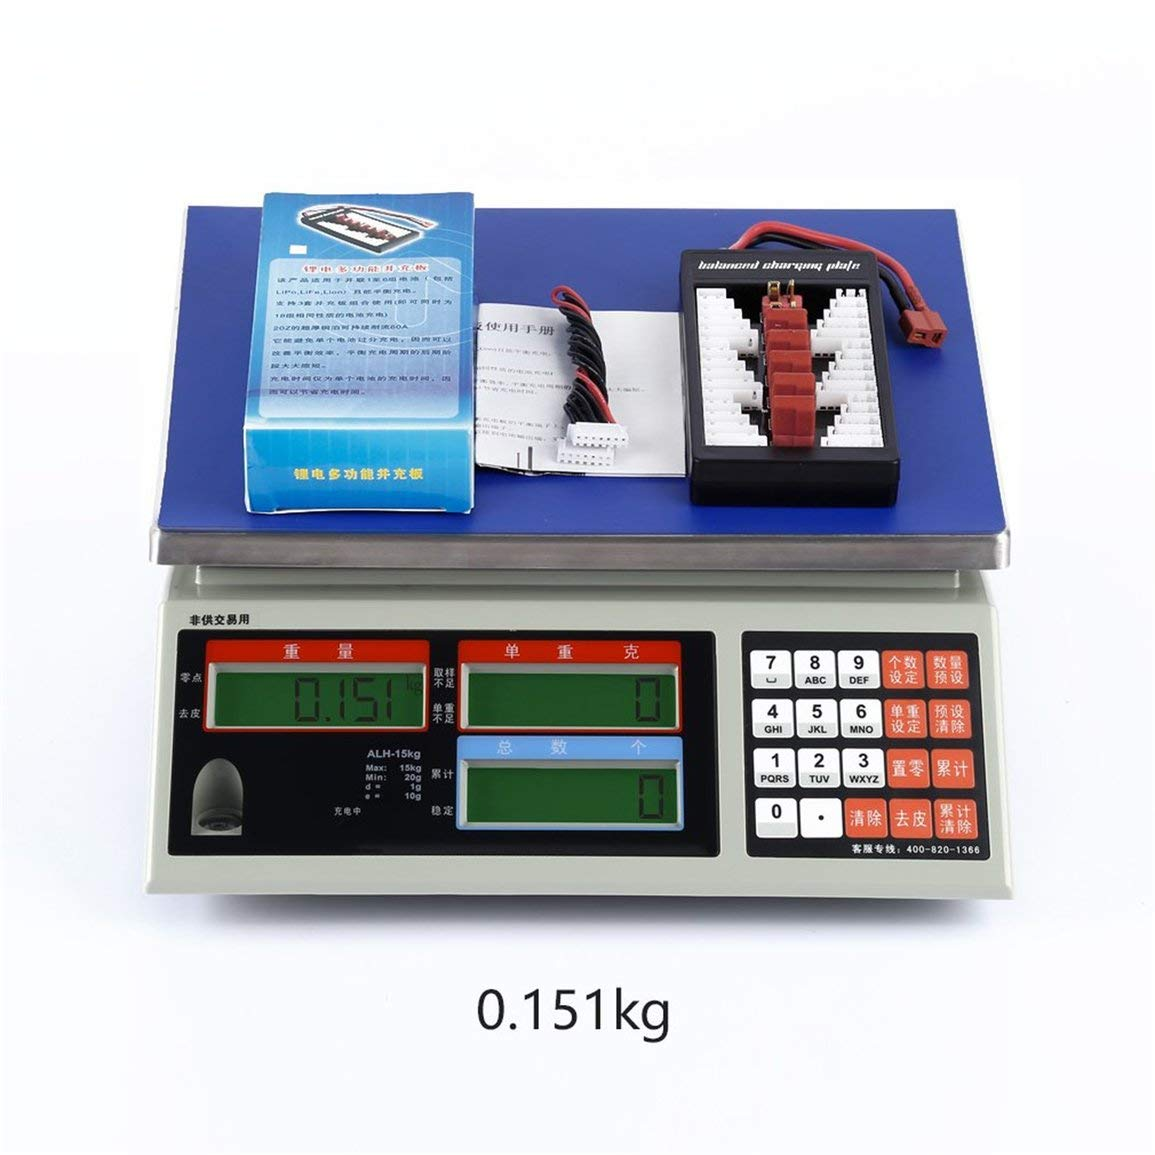 1Set Parallel Charging Board Balance Charge Plate Up to 2-6s Lipo Battery For iMAX B6 B6AC B8 Charg